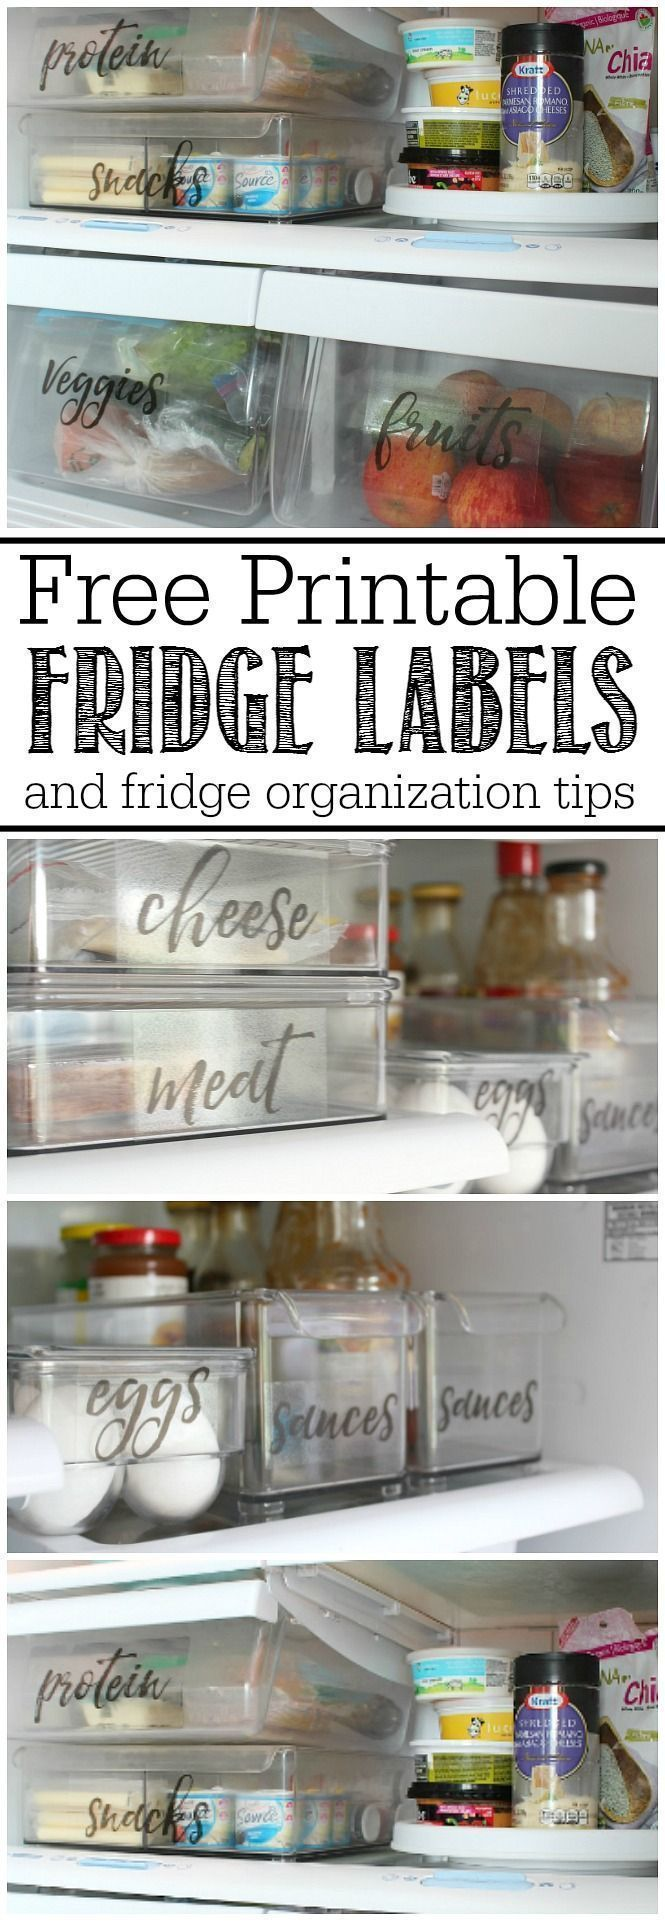 Refrigerator Labels - printable labels, free to download + Refrigerator Organizing Tips - great ways to help you avoid those science projects in the fridge - via Clean and Scentsible